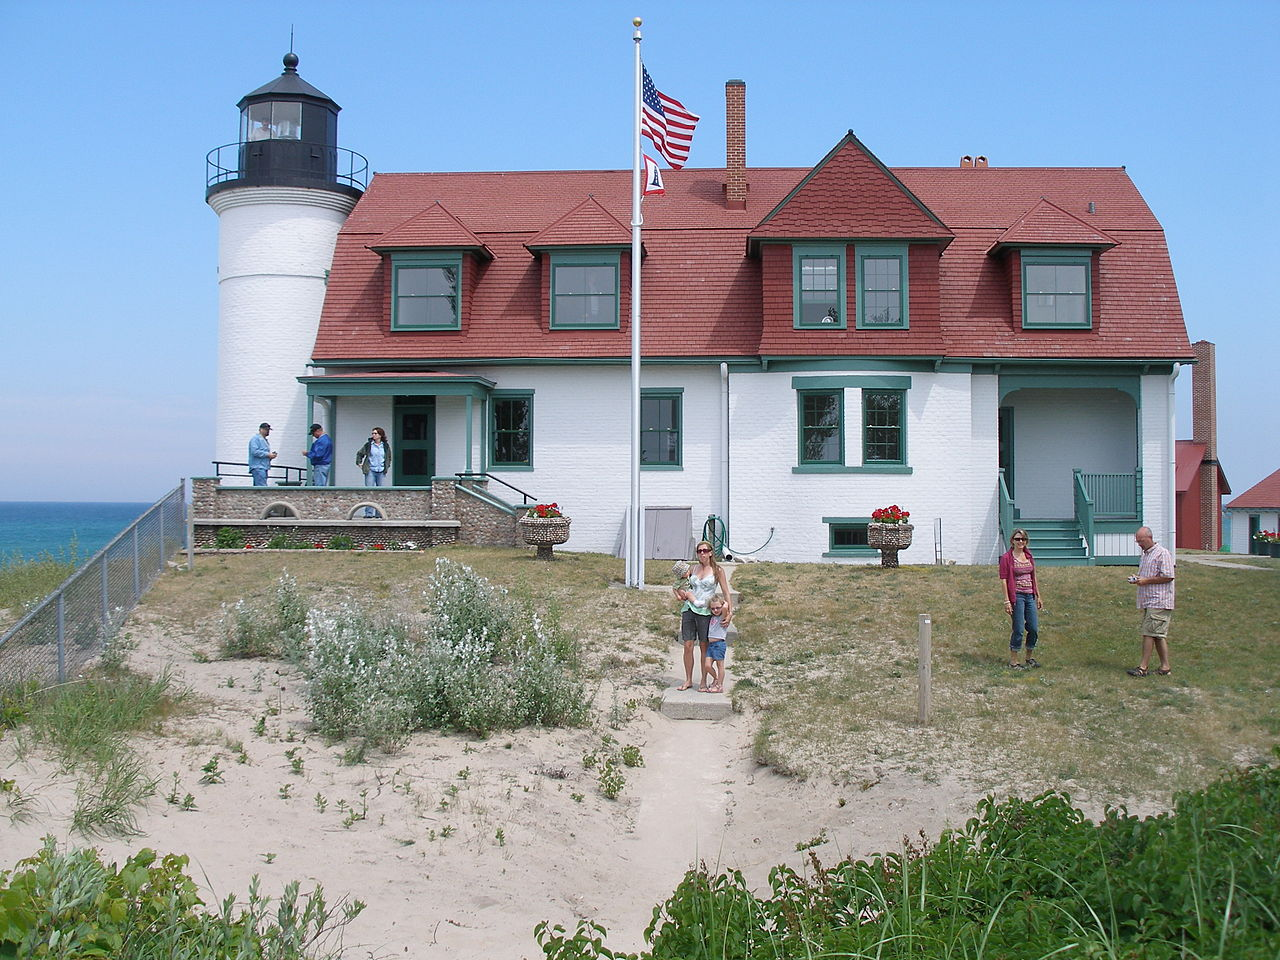 Point Betsie Light House in Frankfort MI